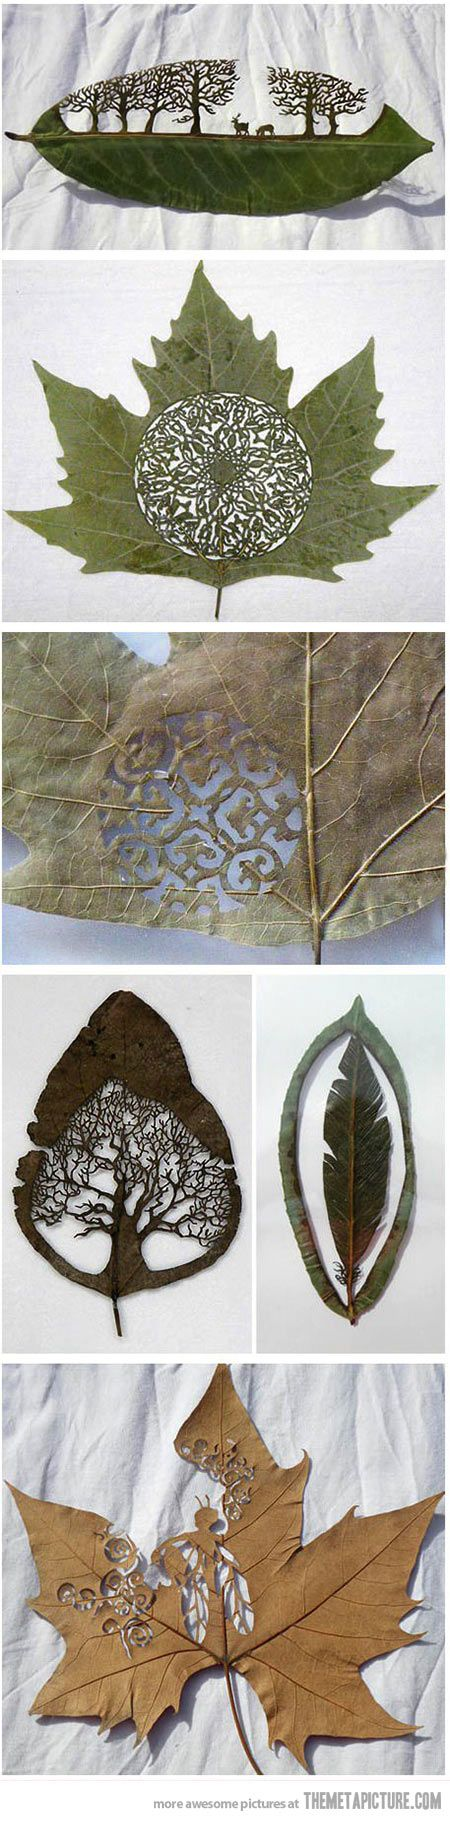 Art in a leaf… Lorenzo Duran Silva, 43, from Guadalajara, near Madrid, was inspired to create the delicate pieces after watching a caterpillar make holes in a leaf by eating it.